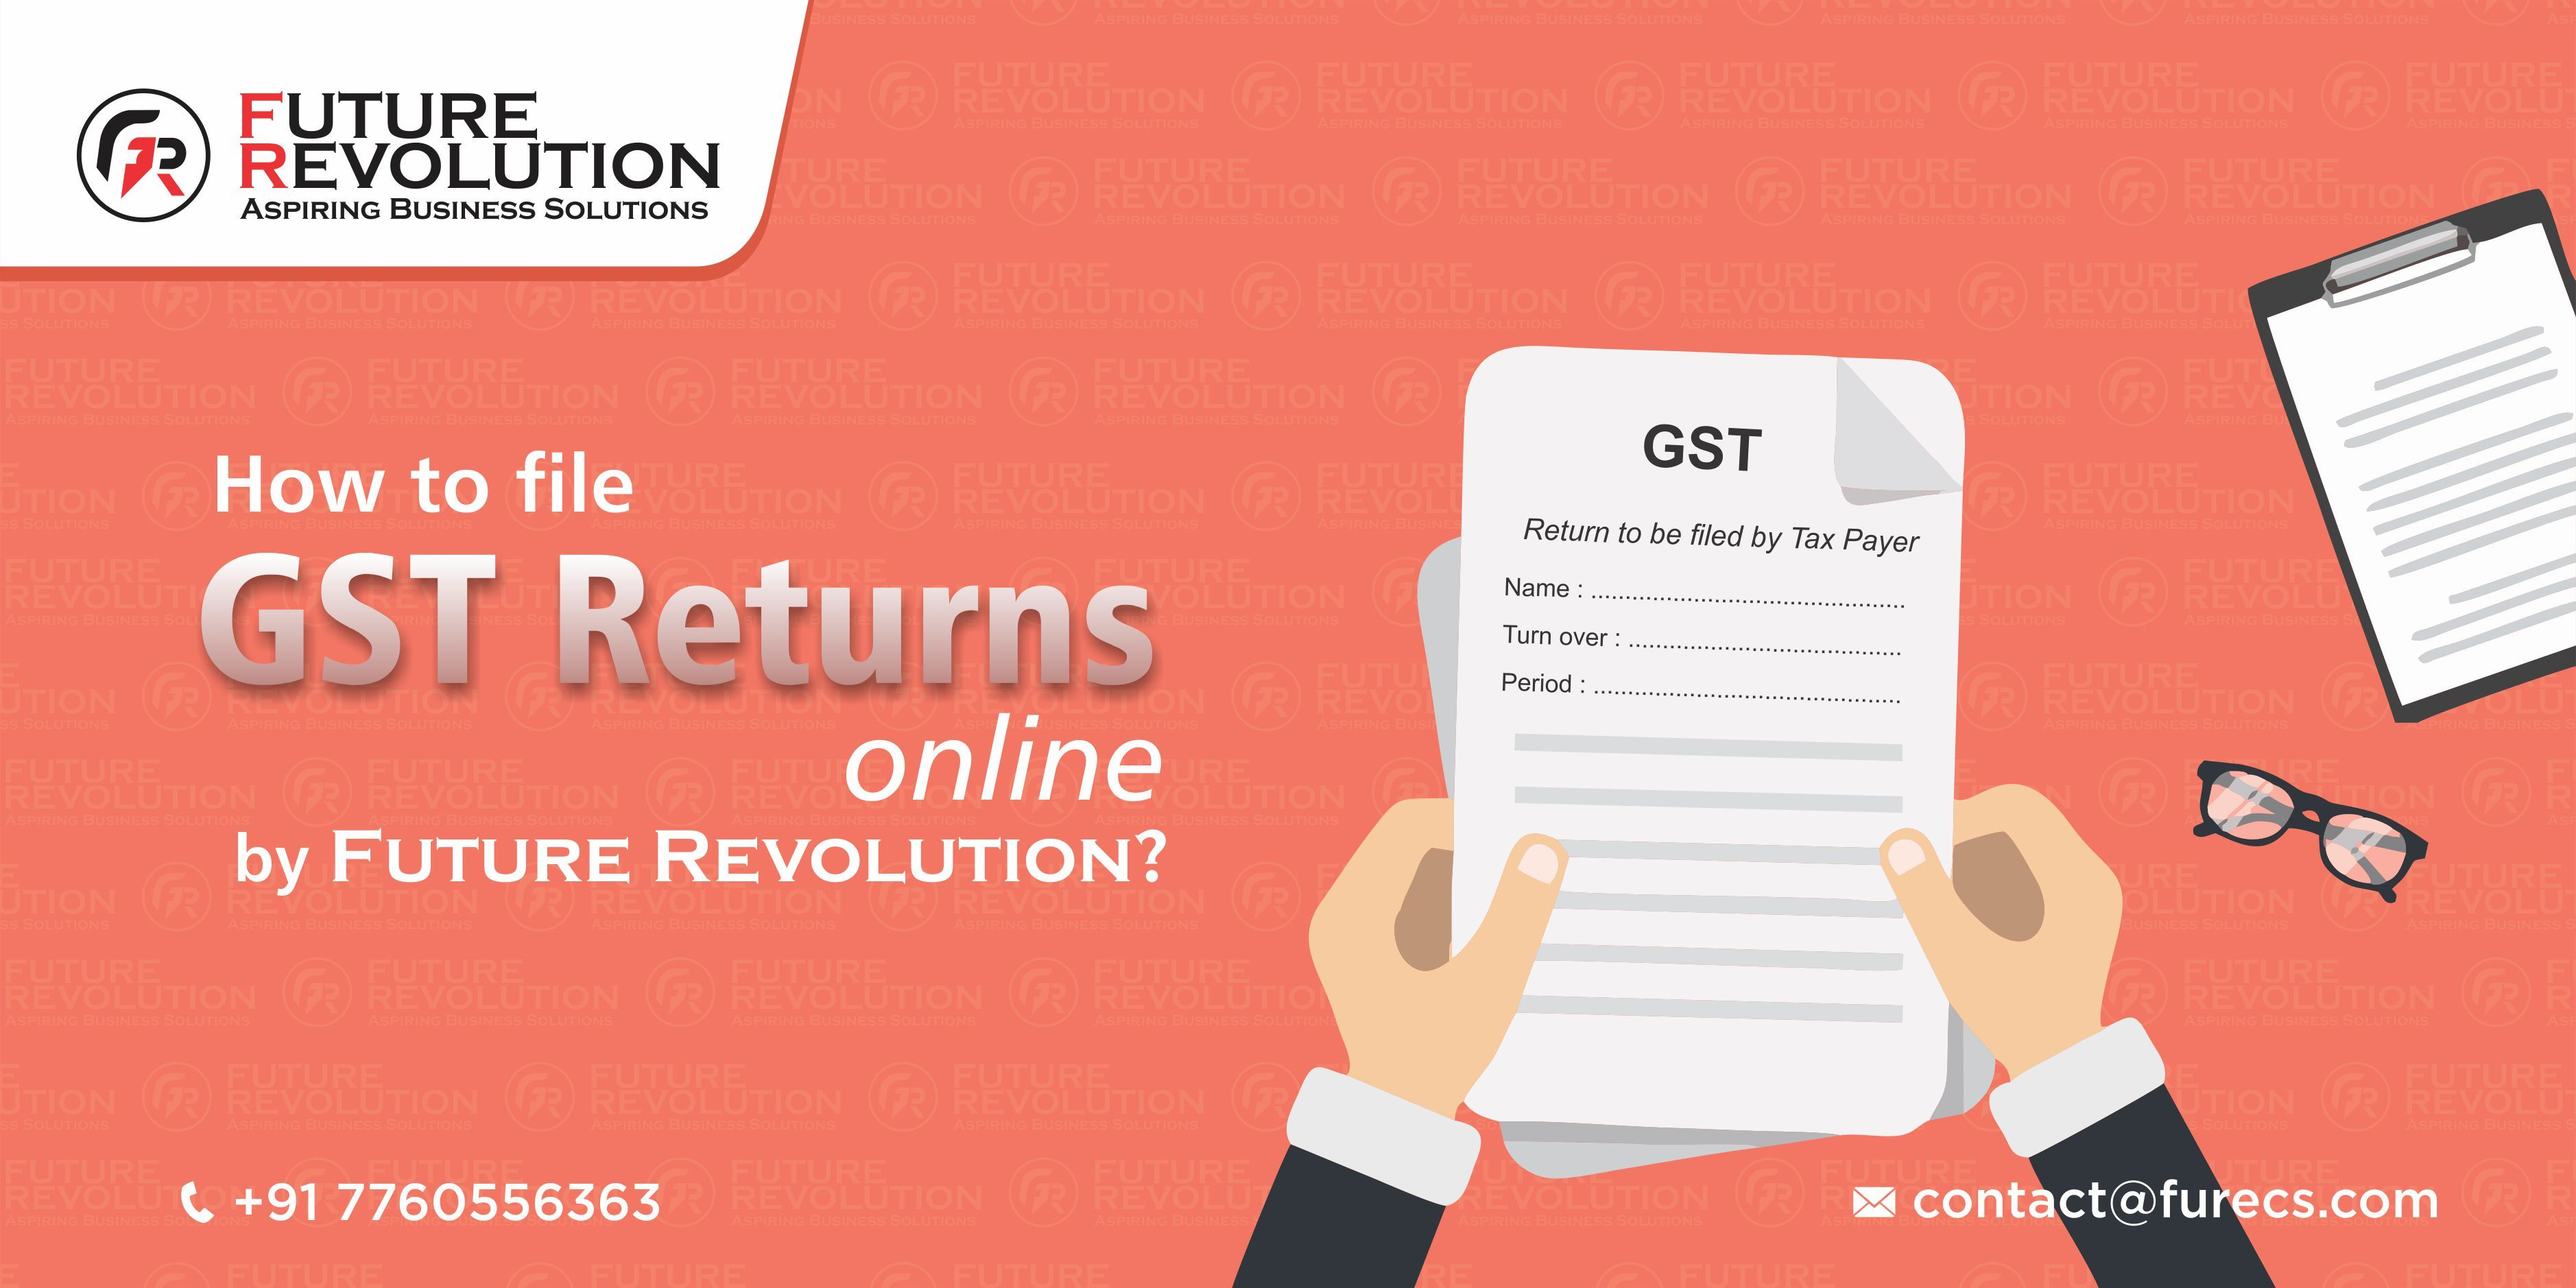 How To File Gst Returns Online By Future Revolution Futurerevolution Gstreturns Taxation For Mor Accounting Services Business Solutions Consulting Business